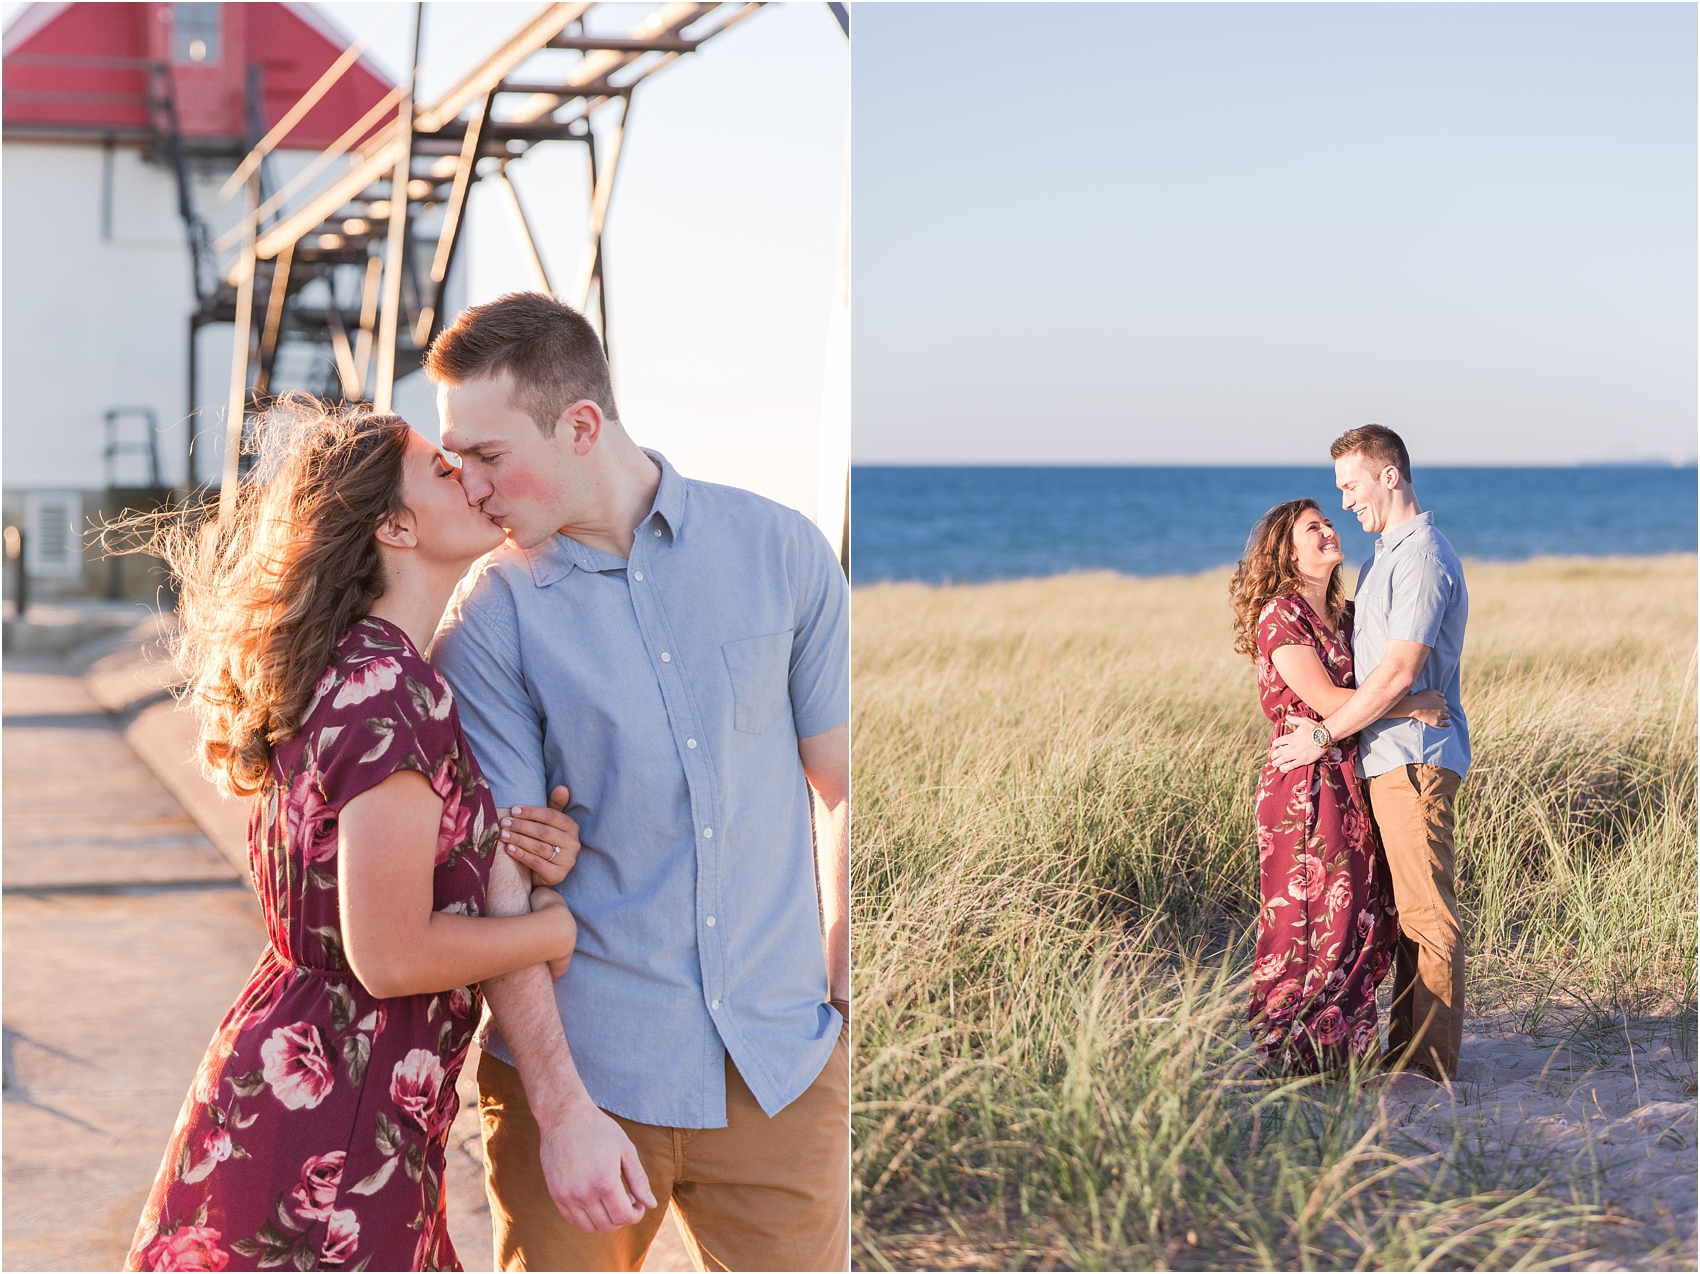 candid-end-of-summer-sunset-engagement-photos-at-silver-beach-in-st-joseph-mi-by-courtney-carolyn-photography_0004.jpg